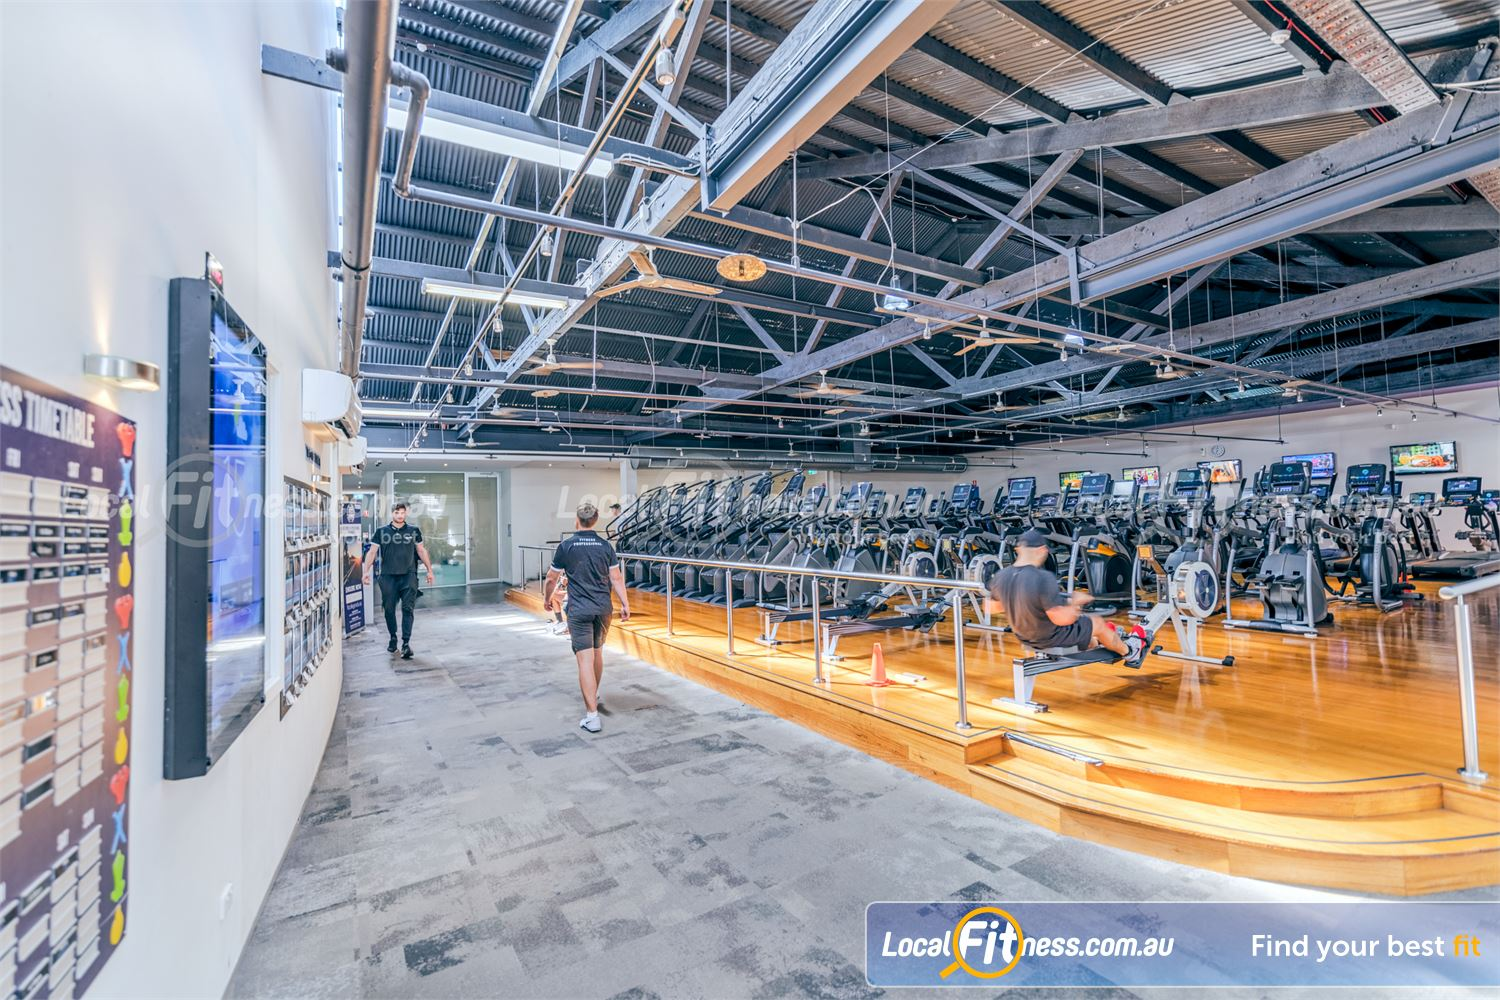 Goodlife Health Clubs Near Balaclava Our Prahran gym includes state of the art cardio machines from MATRIX.